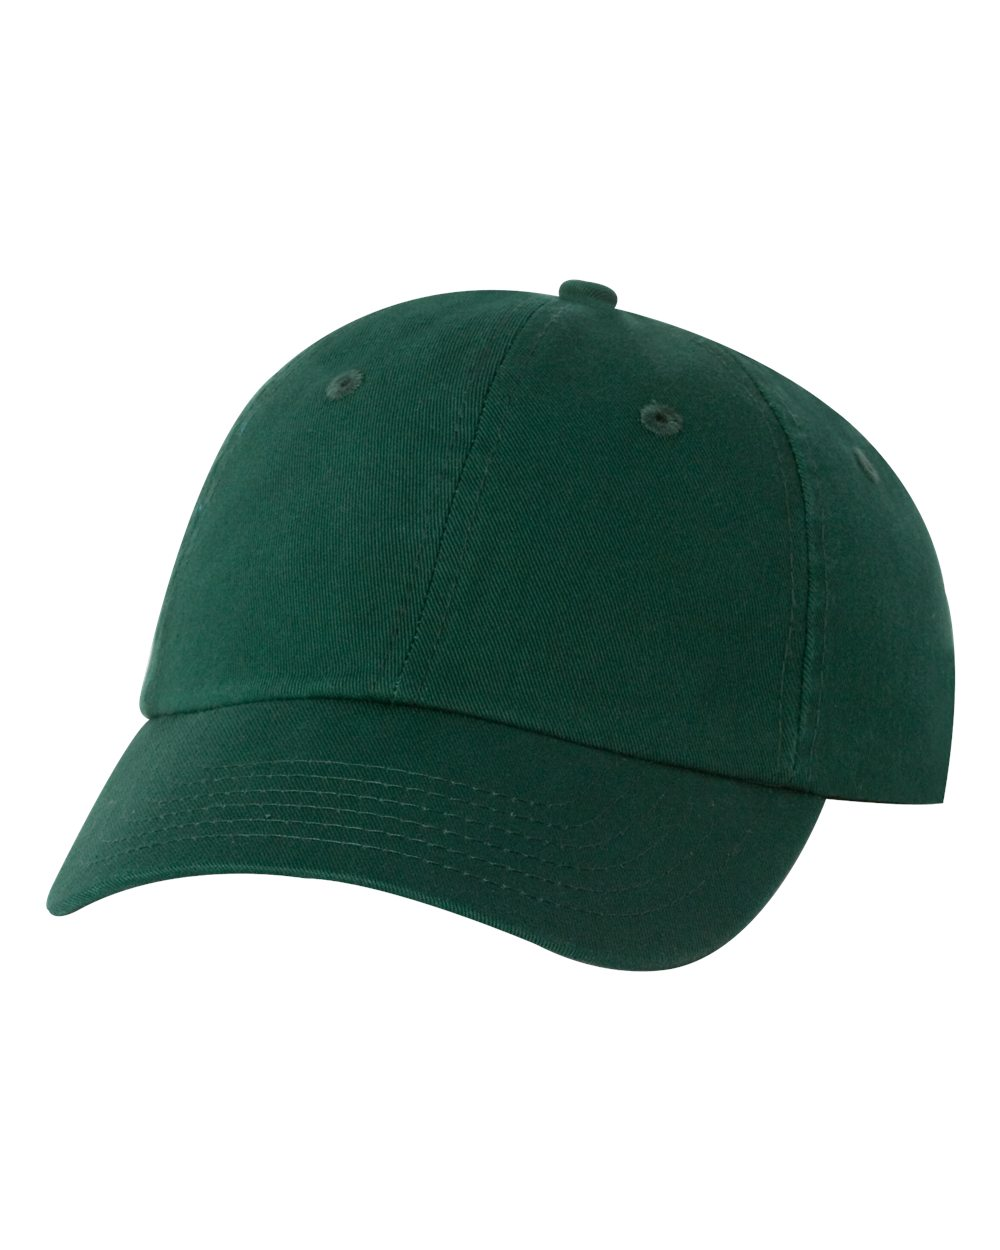 Valucap VC300A - Adult Bio-Washed Unstructured Cap - A world class ... 9eda20be97f